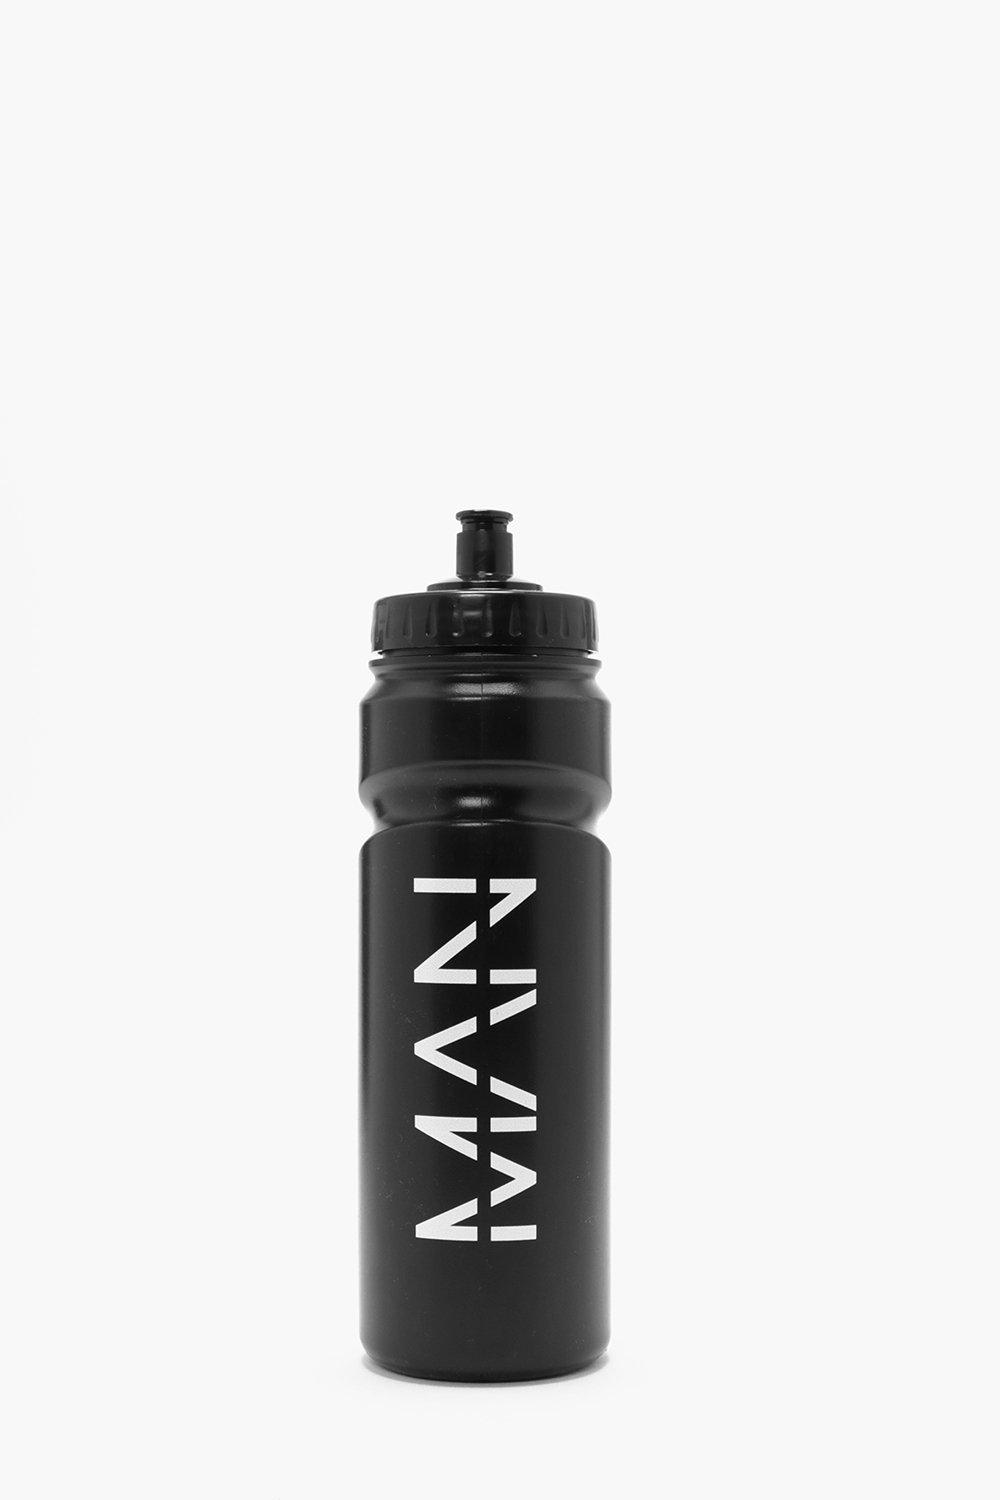 BoohooMAN 750ml Water Bottle - black - Black Booho